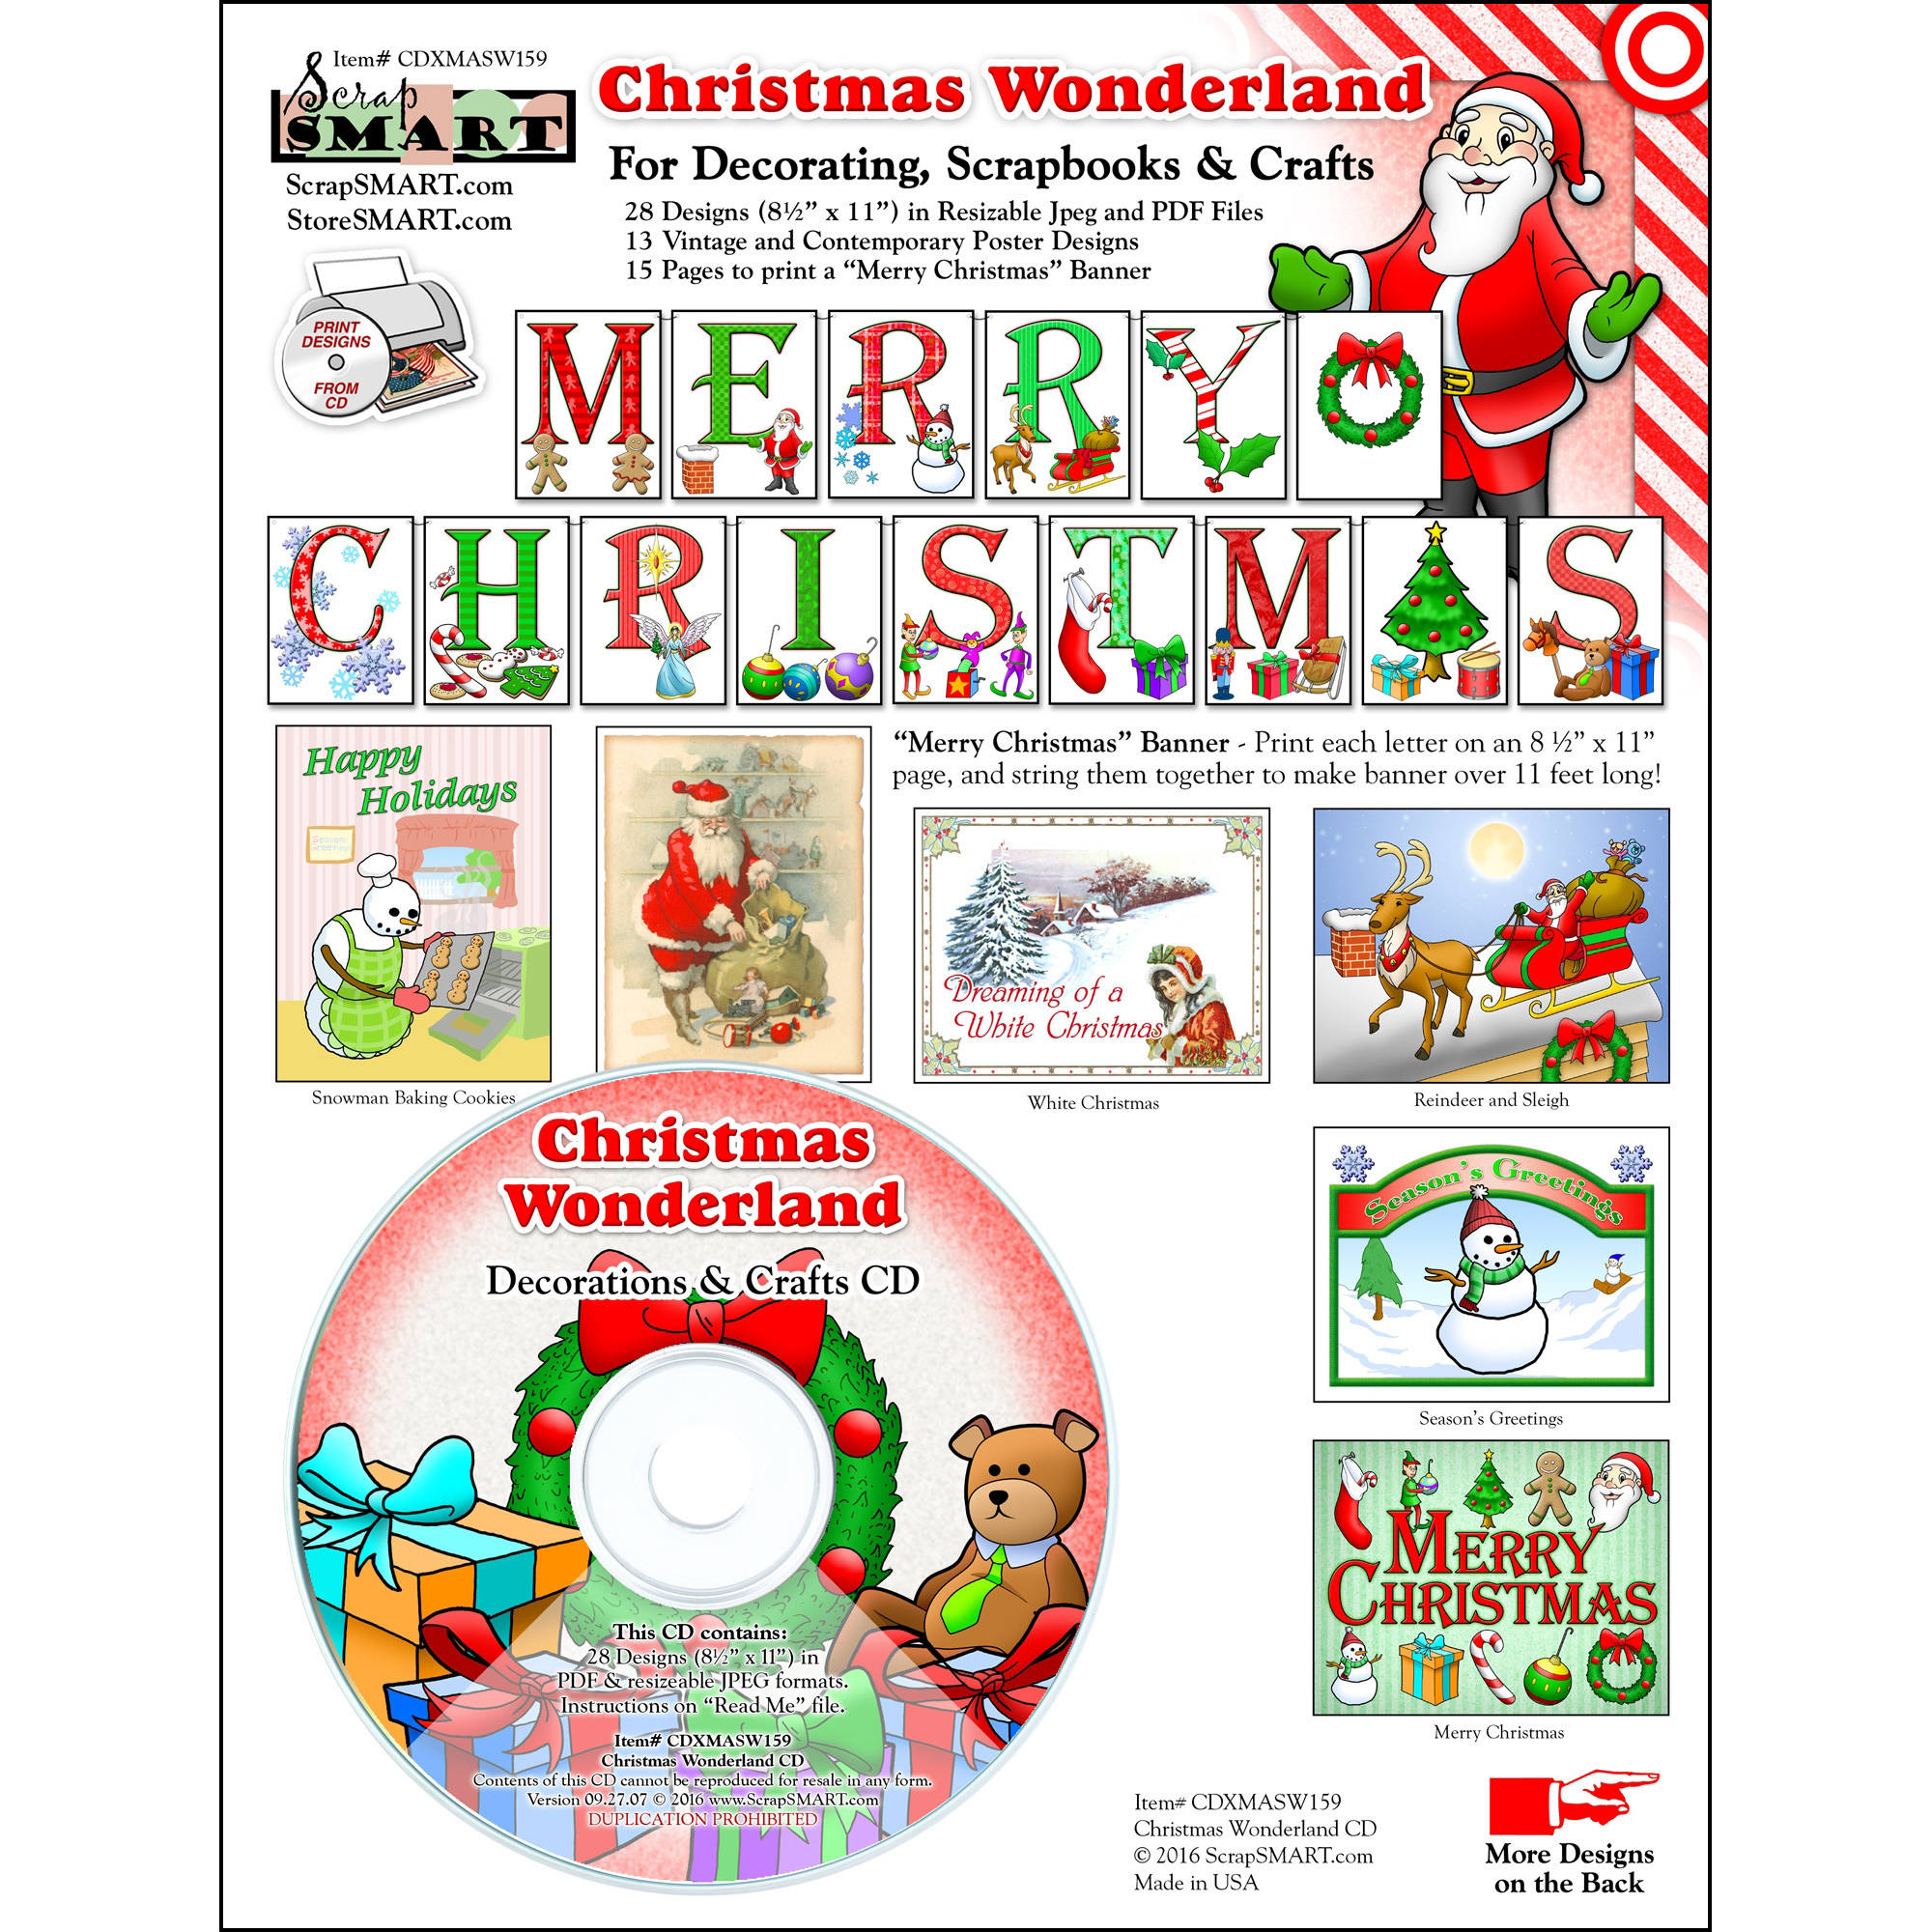 ScrapSMART Christmas Wonderland CD-ROM: Decorations and Crafts